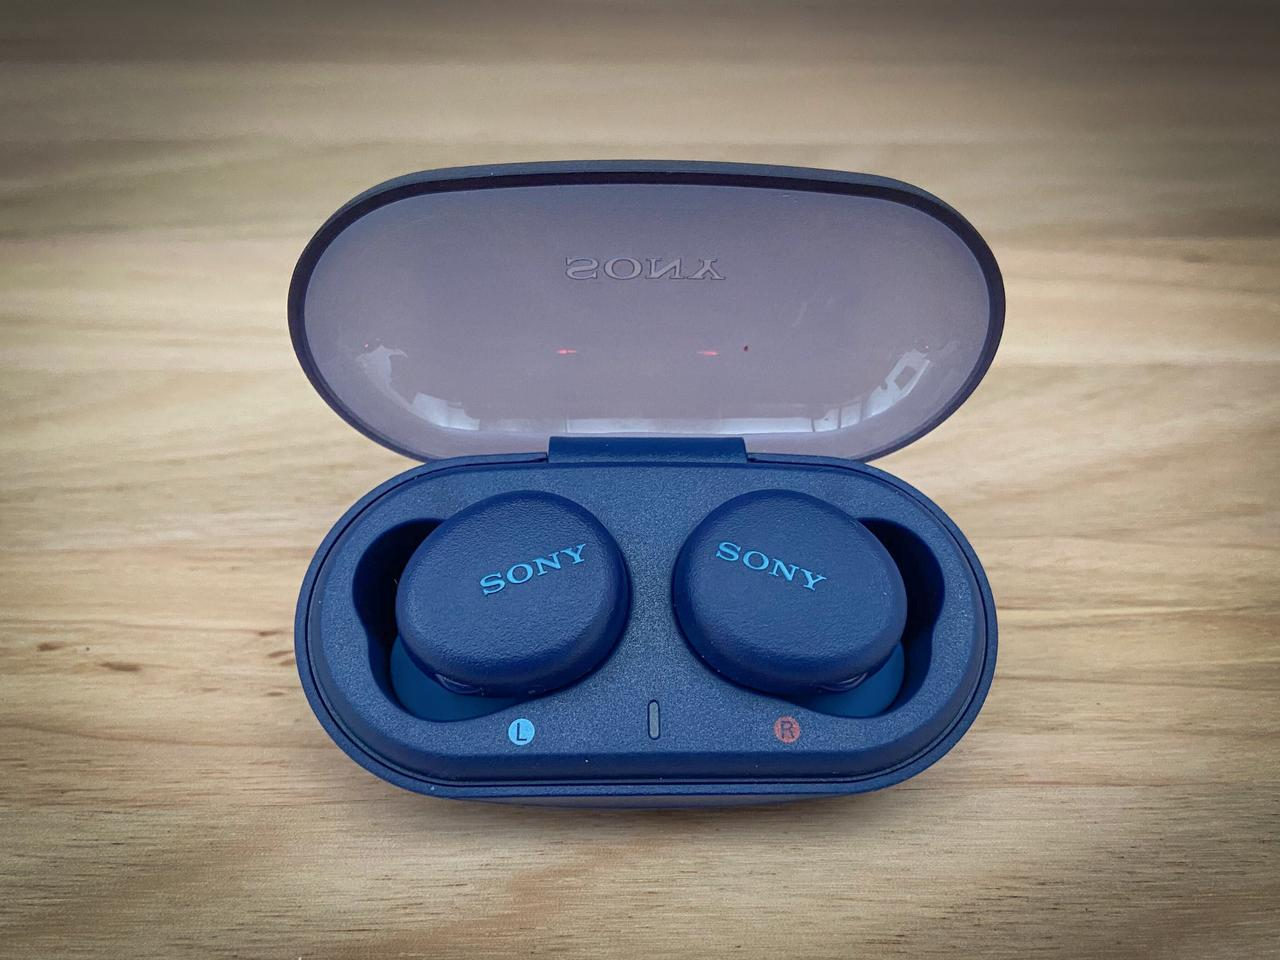 The earbuds sit snugly in the solidly built charging case